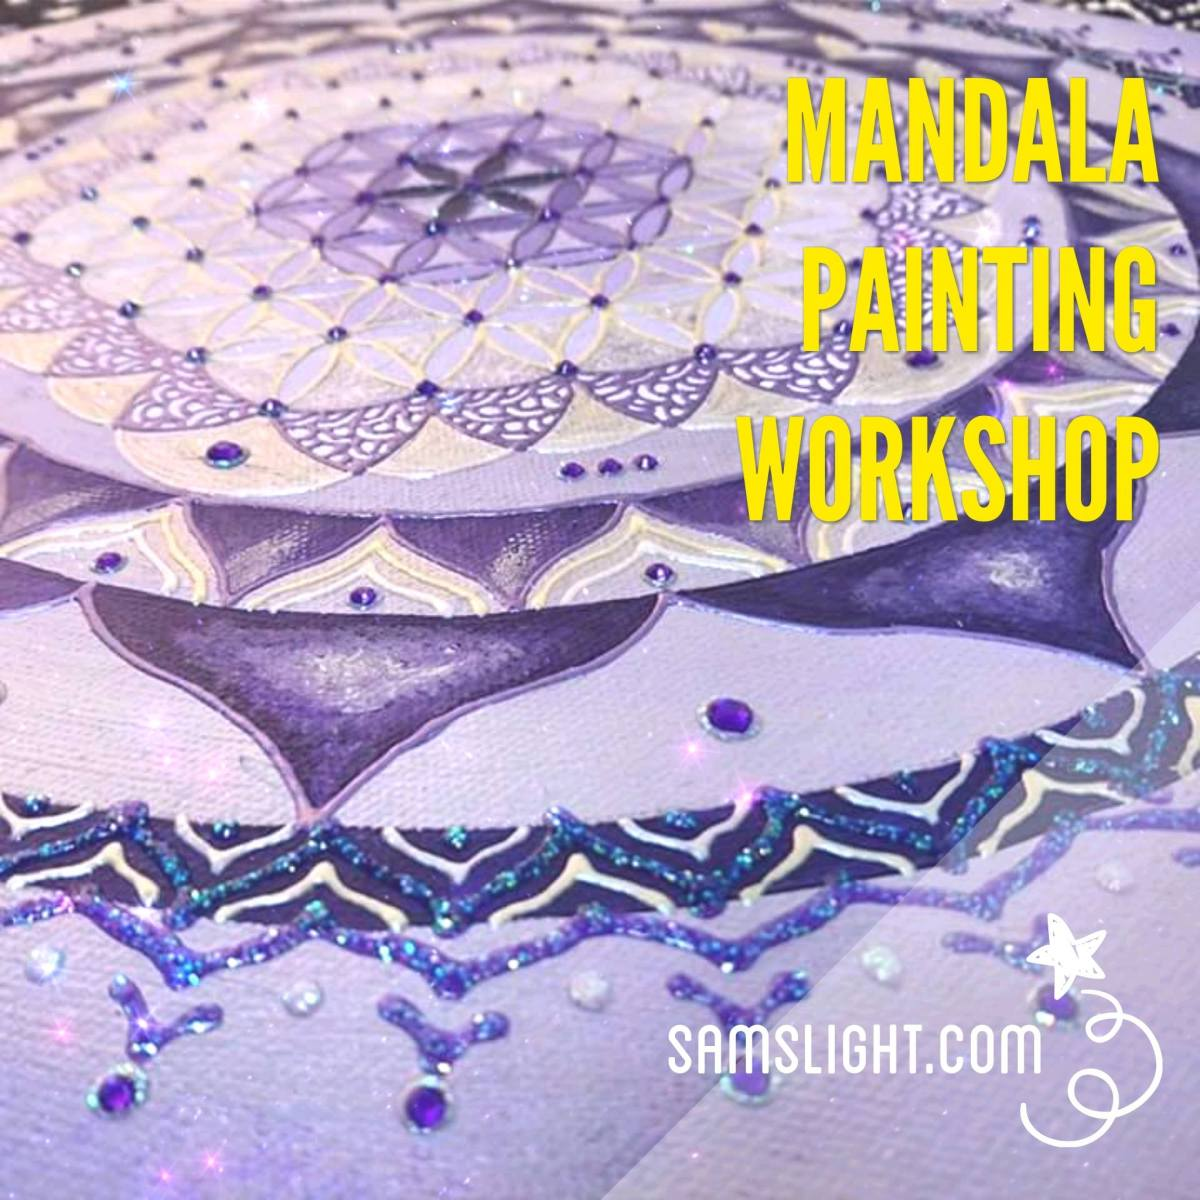 Mandala Painting Workshop曼陀羅畫班